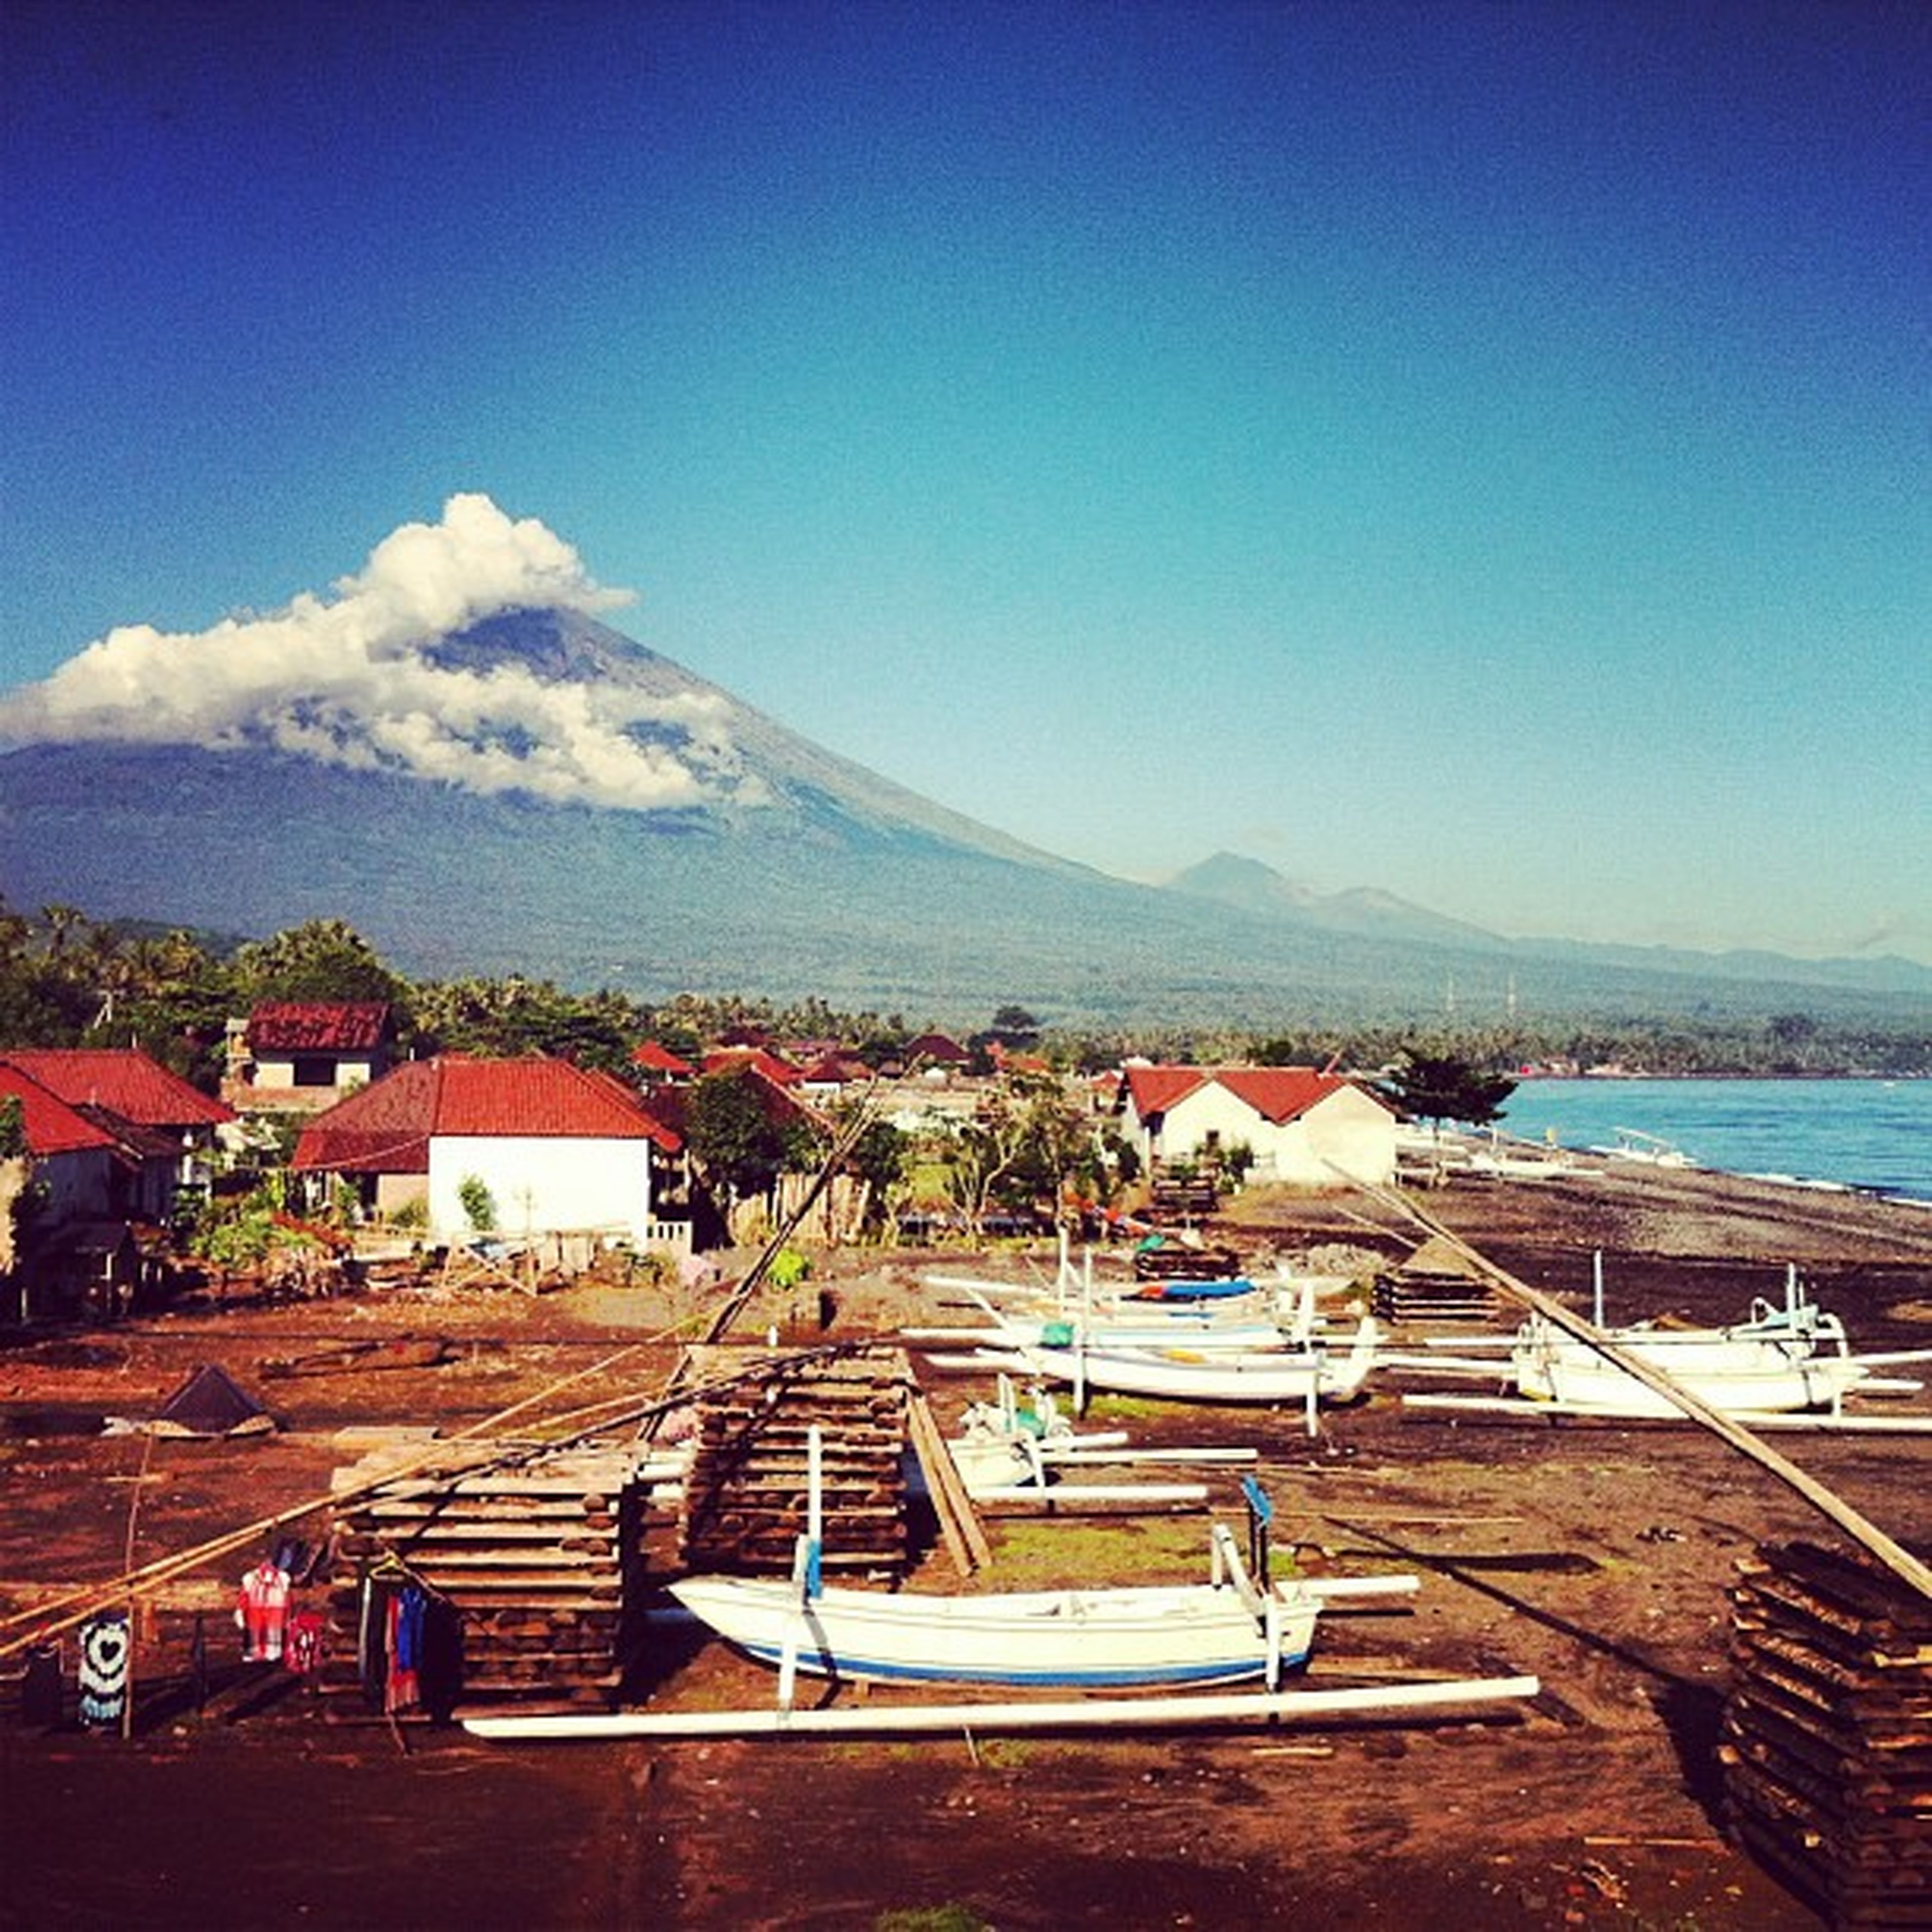 The view from my balcony: blacksand beach & fishing village of Amed w/ Mt. Agung in the background Bali INDONESIA